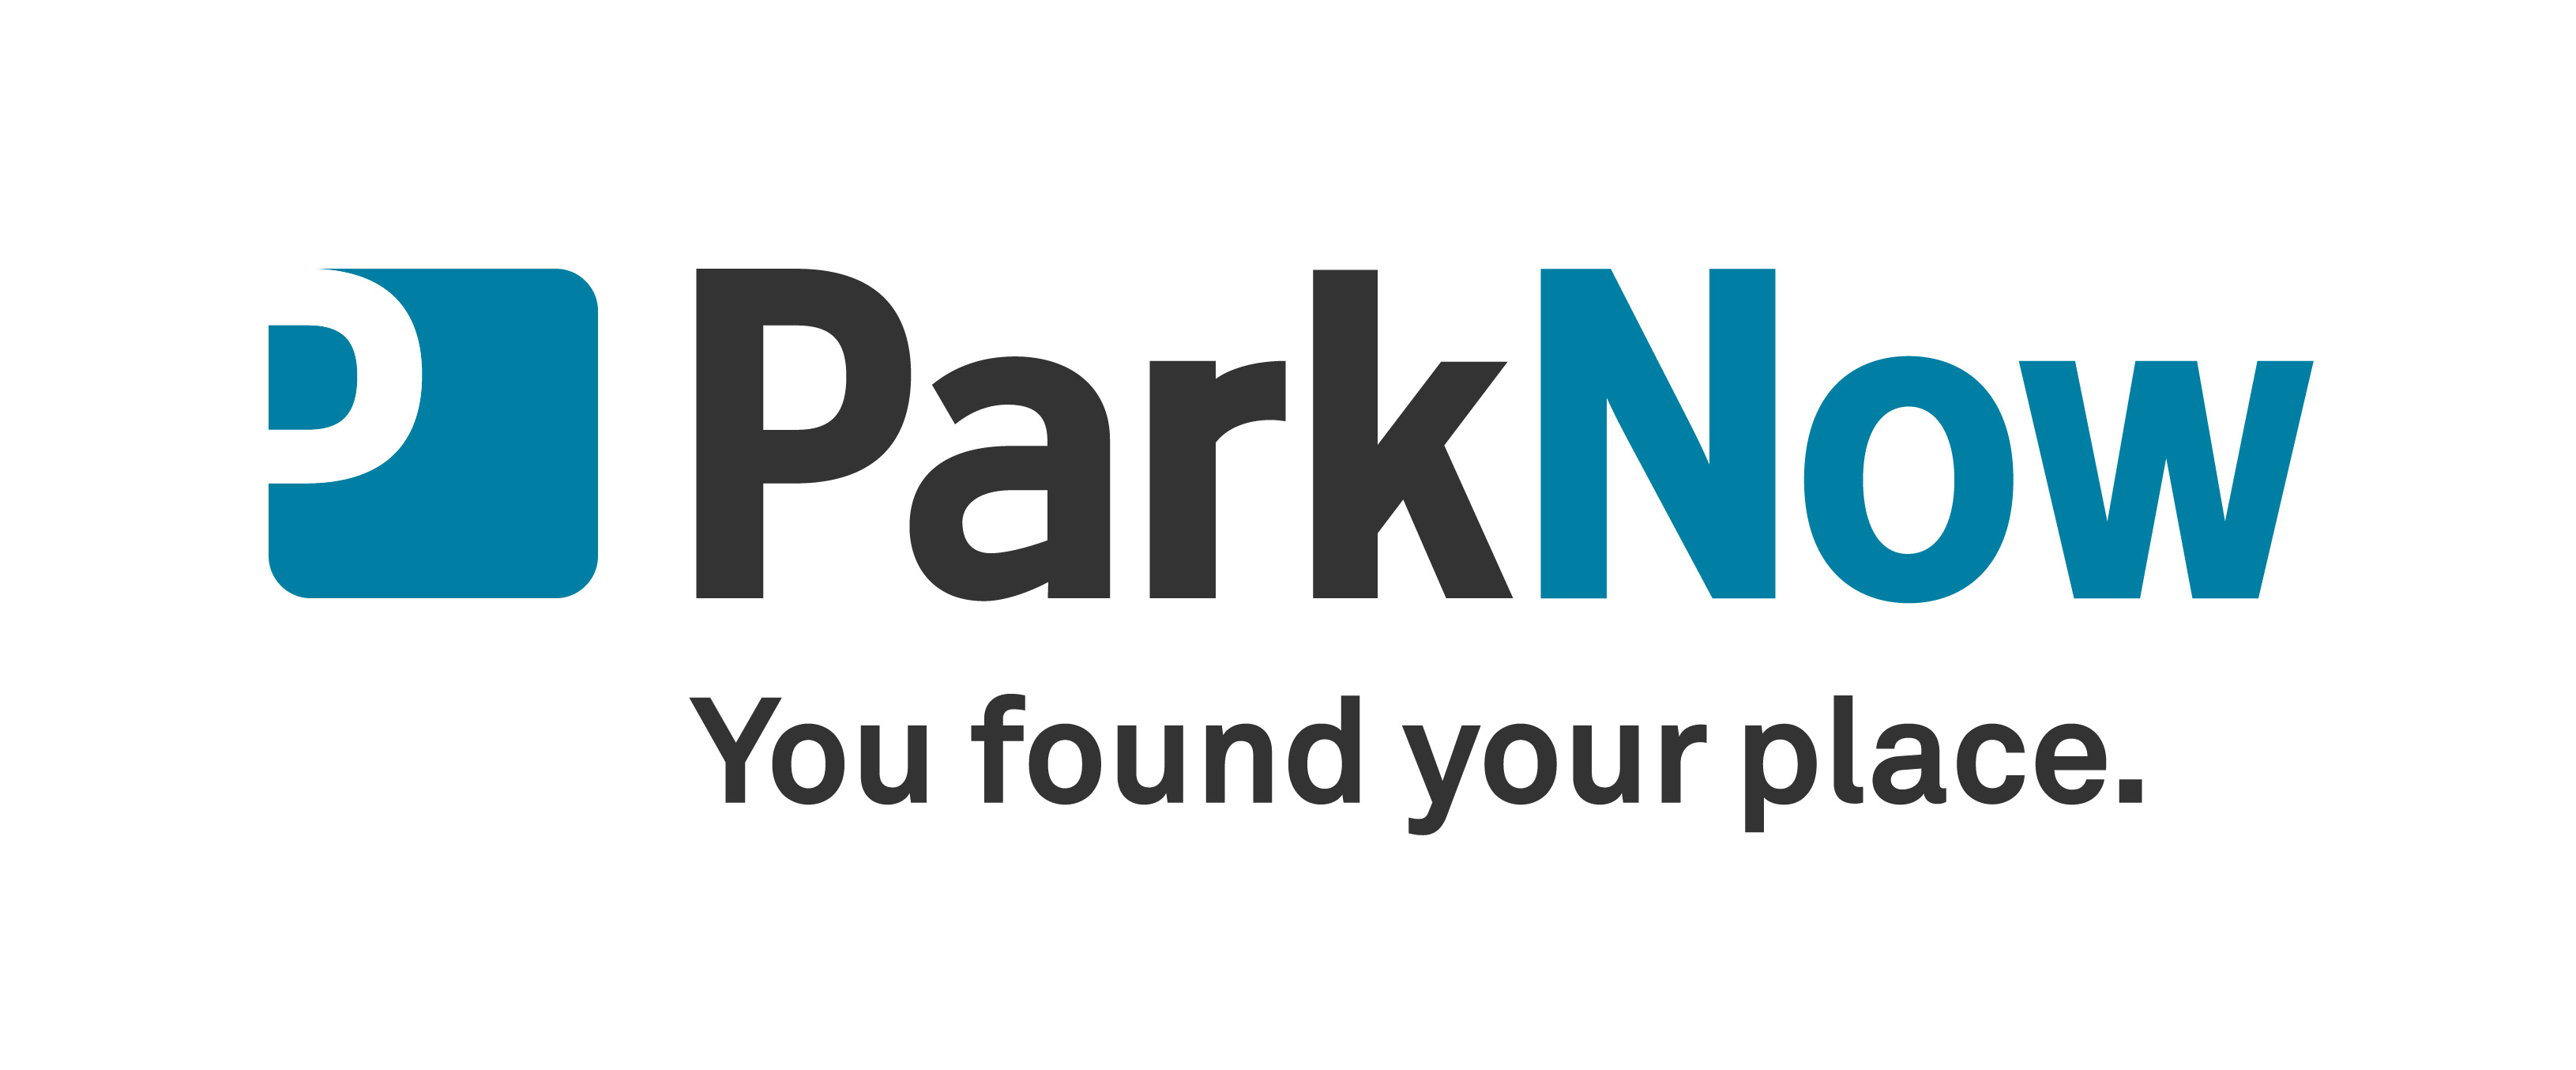 Parkmobile Announces Partnership With The National Cherry